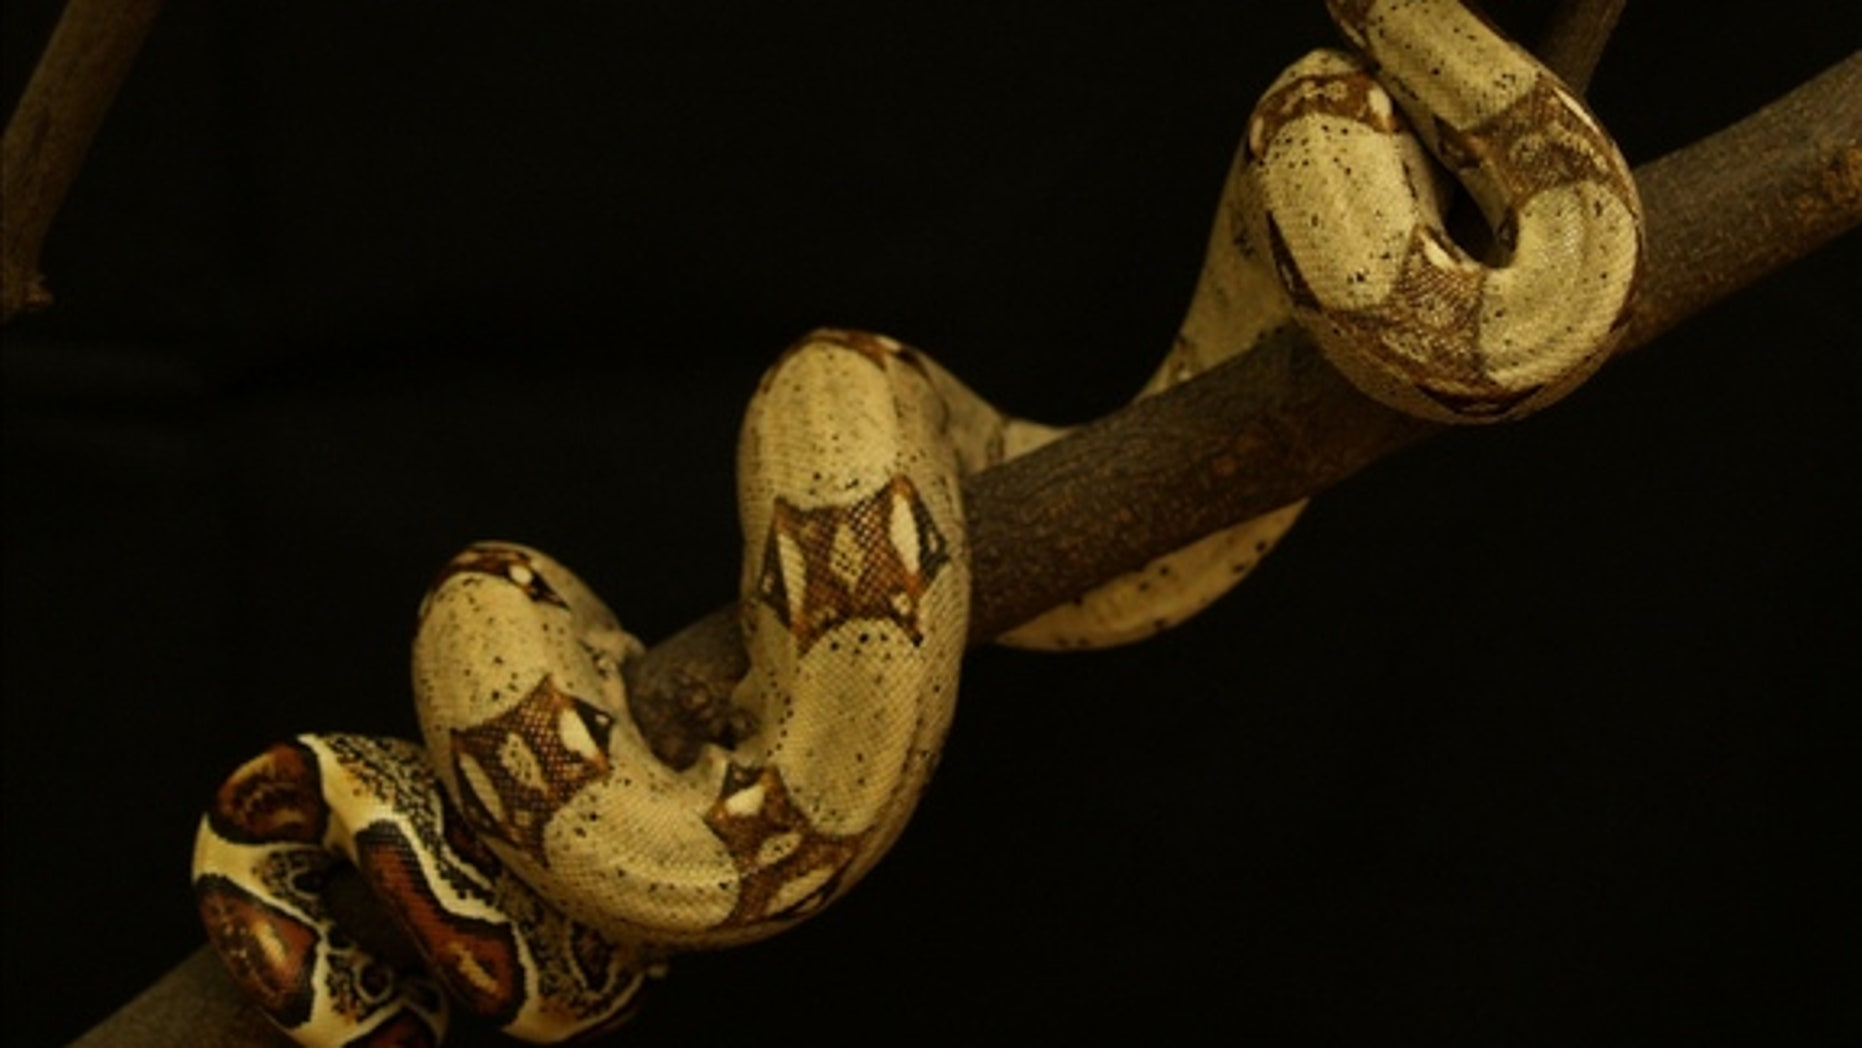 A boa constrictor slithers up a tree.